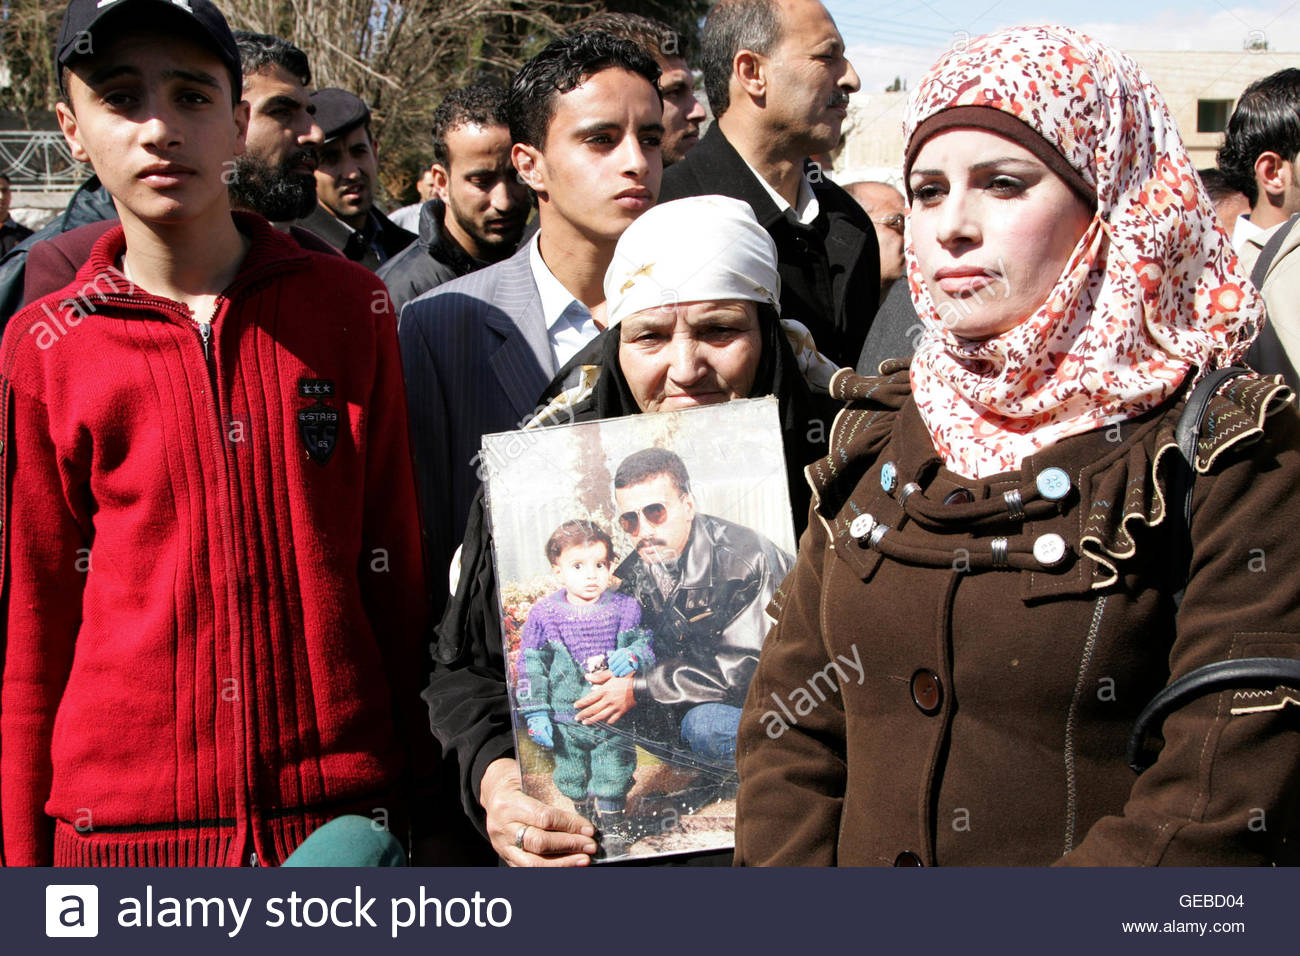 Relatives of Ahmed Daqamseh, a Jordanian soldier who was sentenced to life imprisonment for shooting dead seven Stock Photo